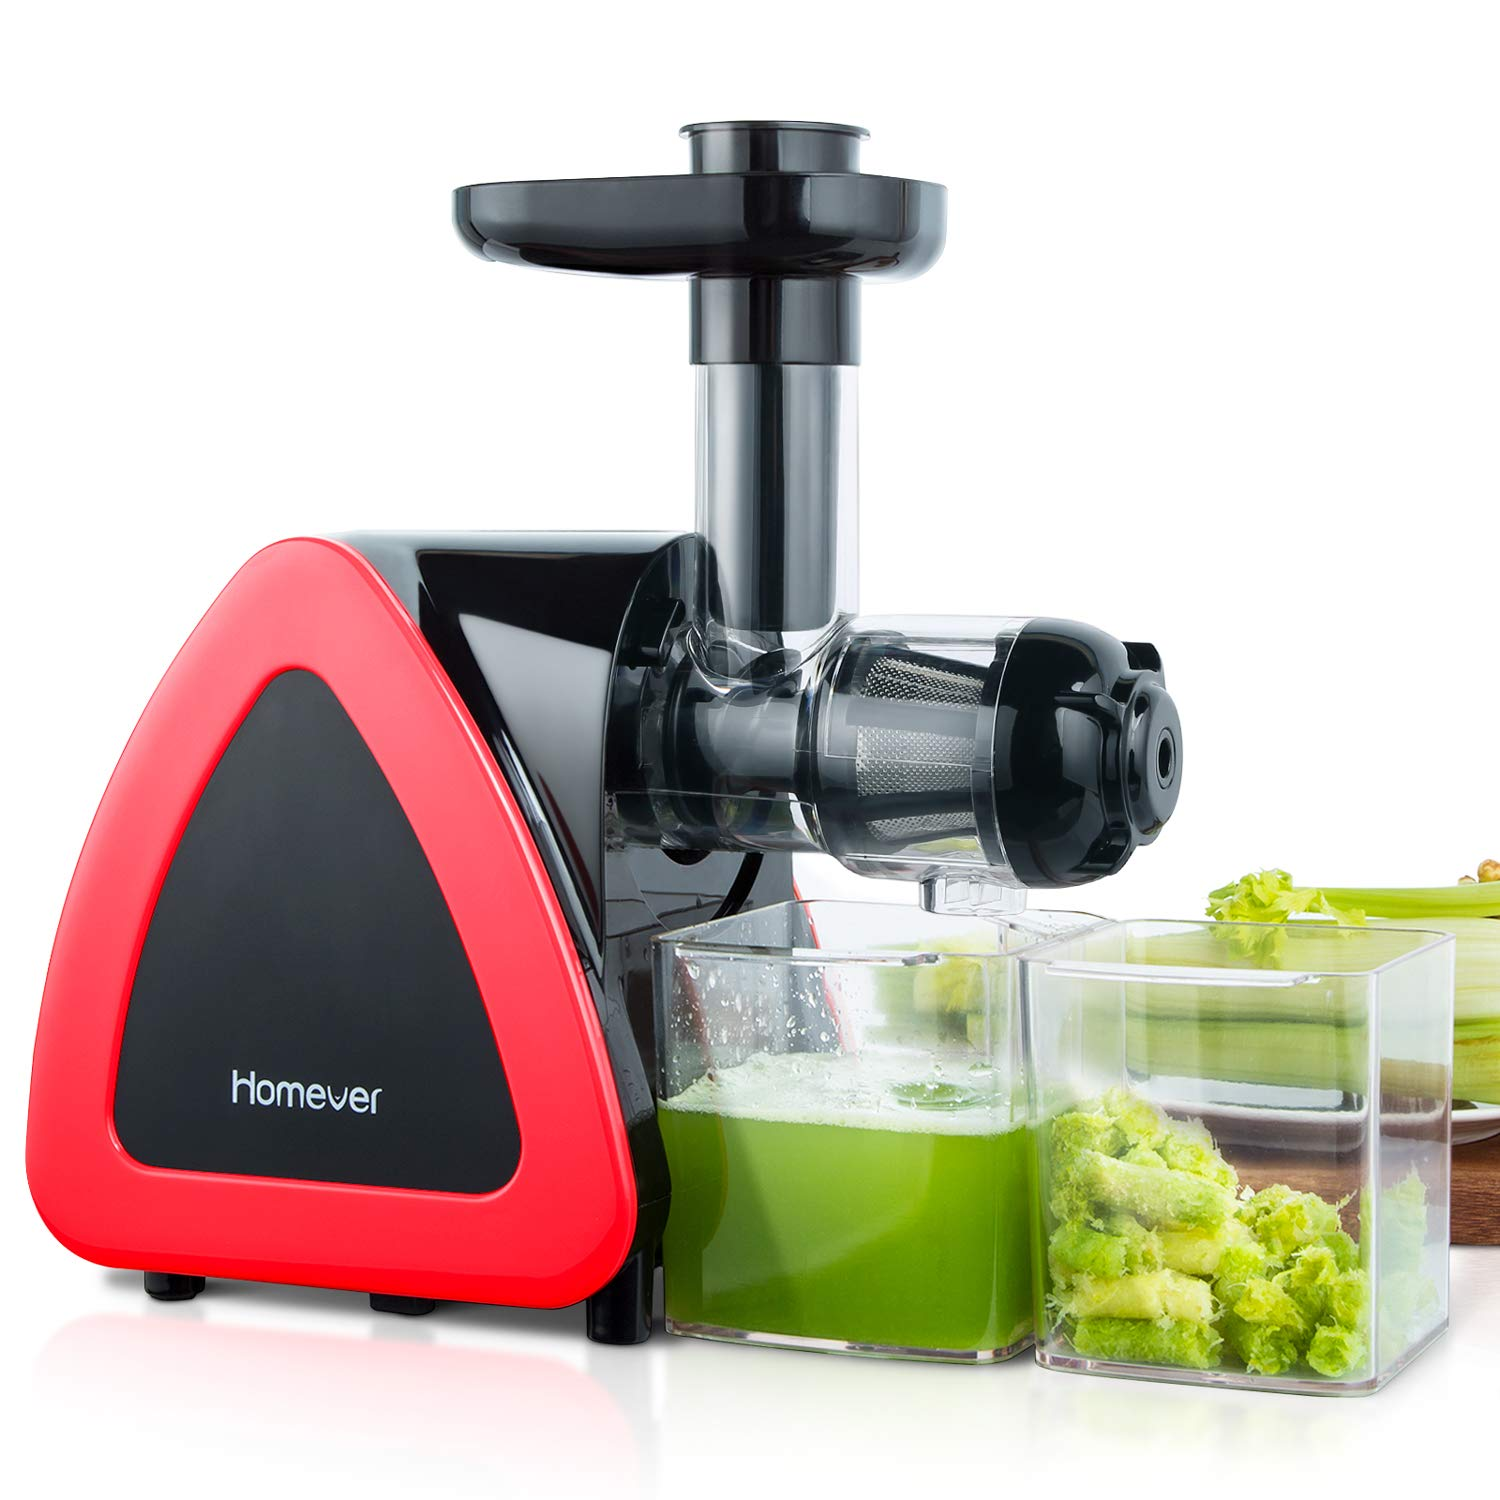 Homever Juicer Machines, Slow Masticating Juicer for Fruits and Vegetables, Quiet Motor, Reverse Function, Easy to Clean Hight Nutrient Cold Press Juicer Machine with Juice Cup & Brush, BPA-Free by Homever (Image #2)